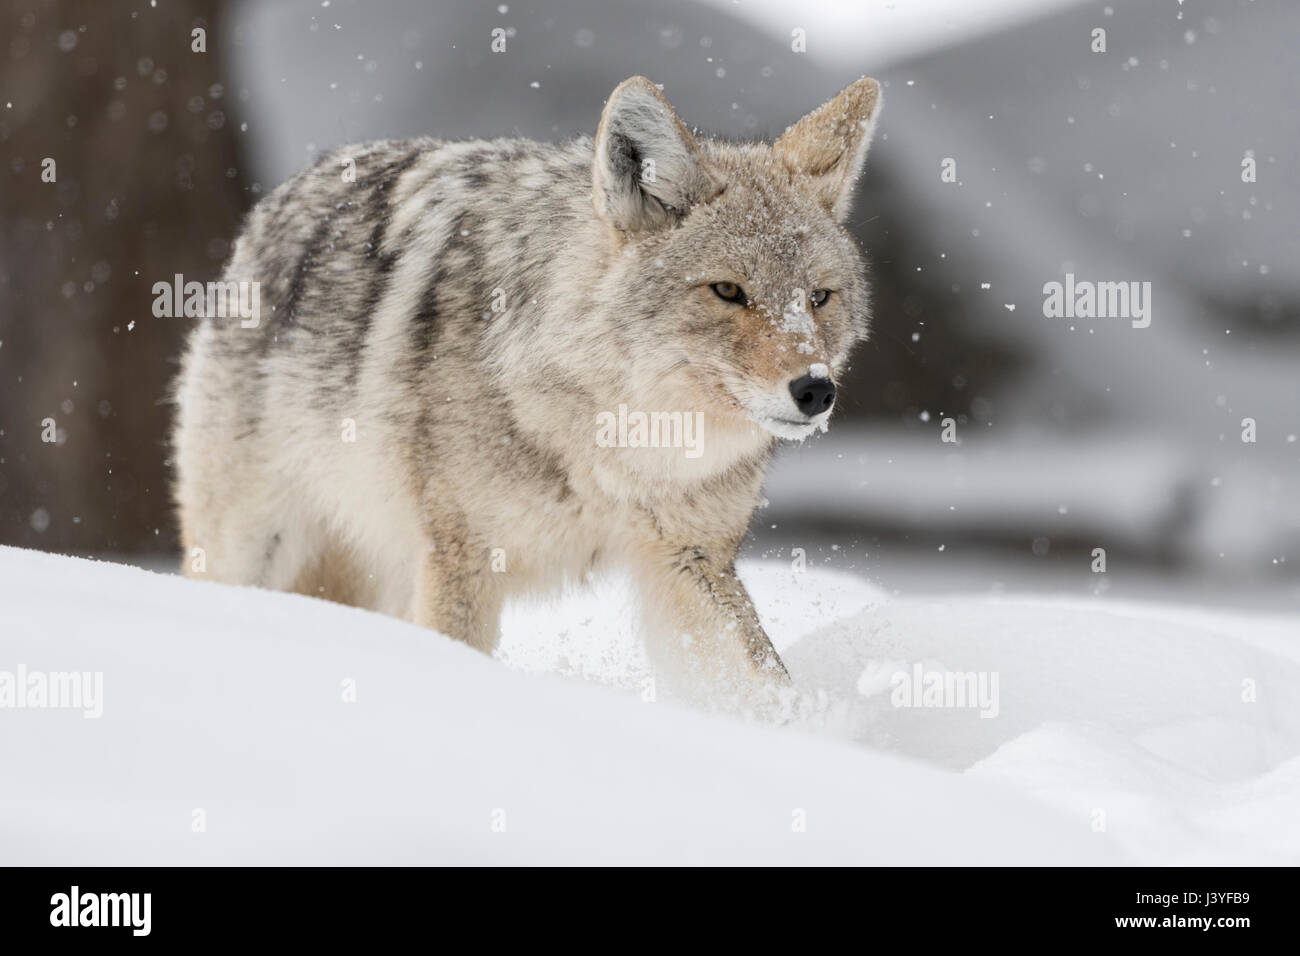 Coyote ( Canis latrans ), adult in winter, walking, running through deep snow, cunning, shifty, angry glimpse, watching - Stock Image